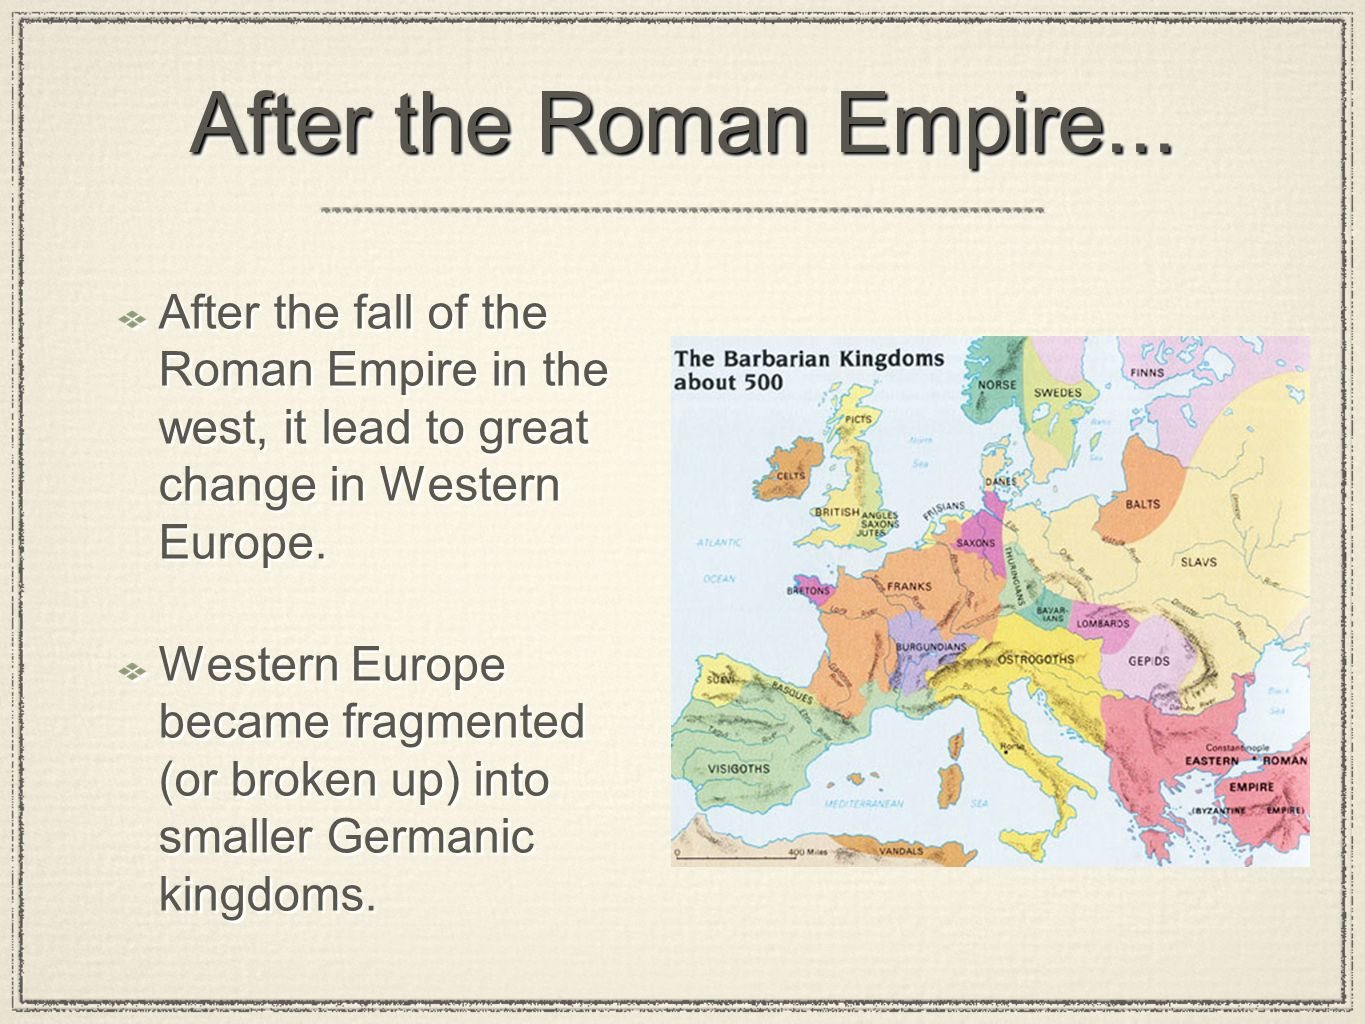 the changes that occurred in western europe from the fall of the roman empire to 1000 ad The history of europe and repeated attacks led to the fall of the western roman empire ad 476 from about the year 1000 onwards, western europe saw the.